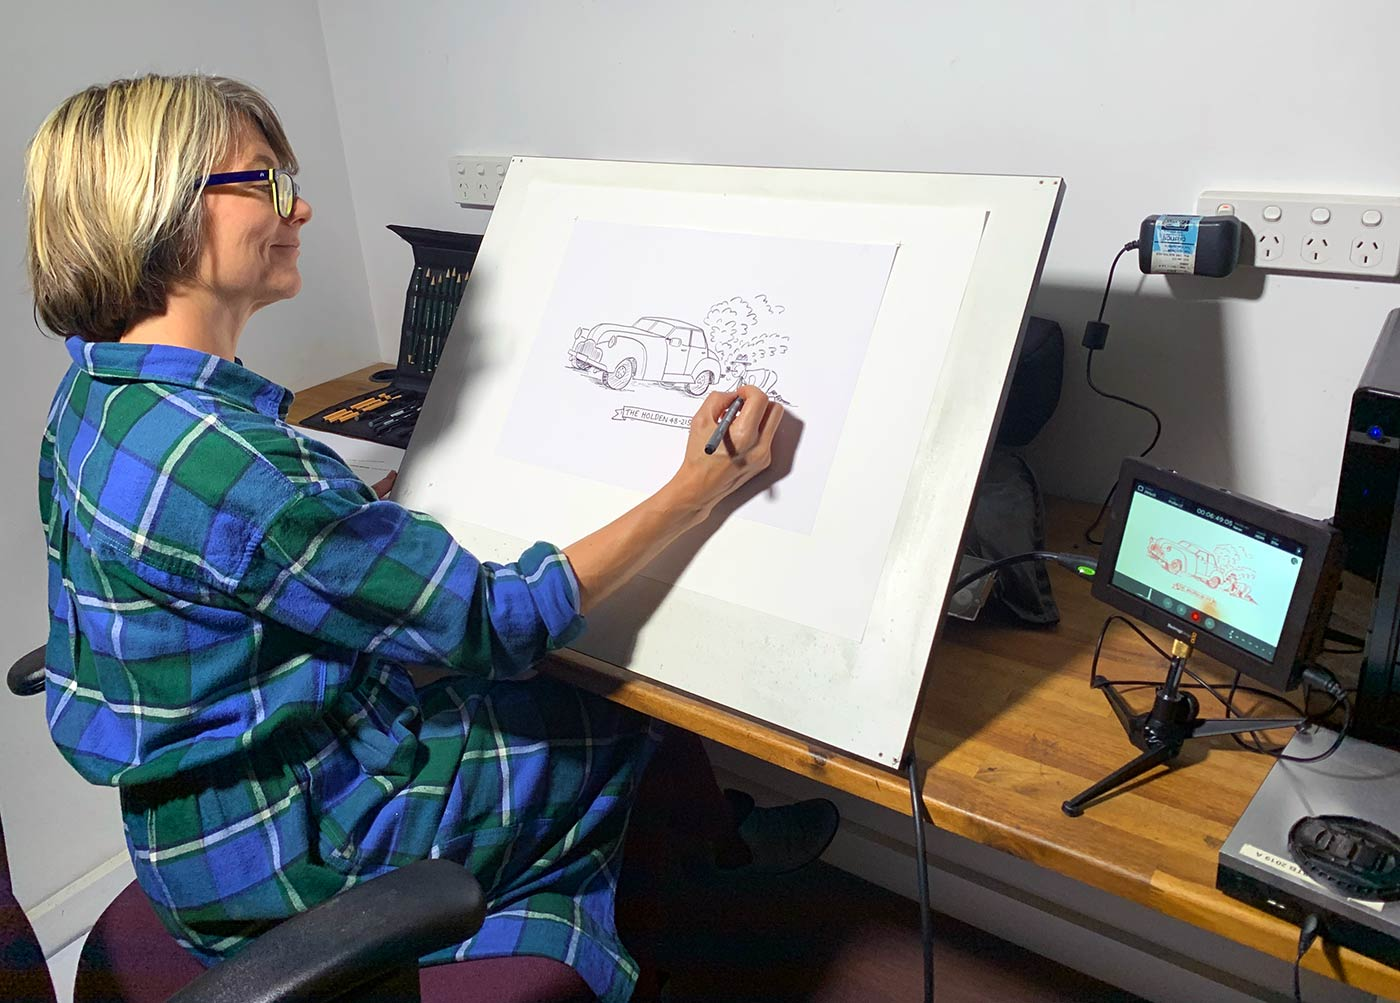 A woman sits at a studio desk sketching an animation using digital equipment.